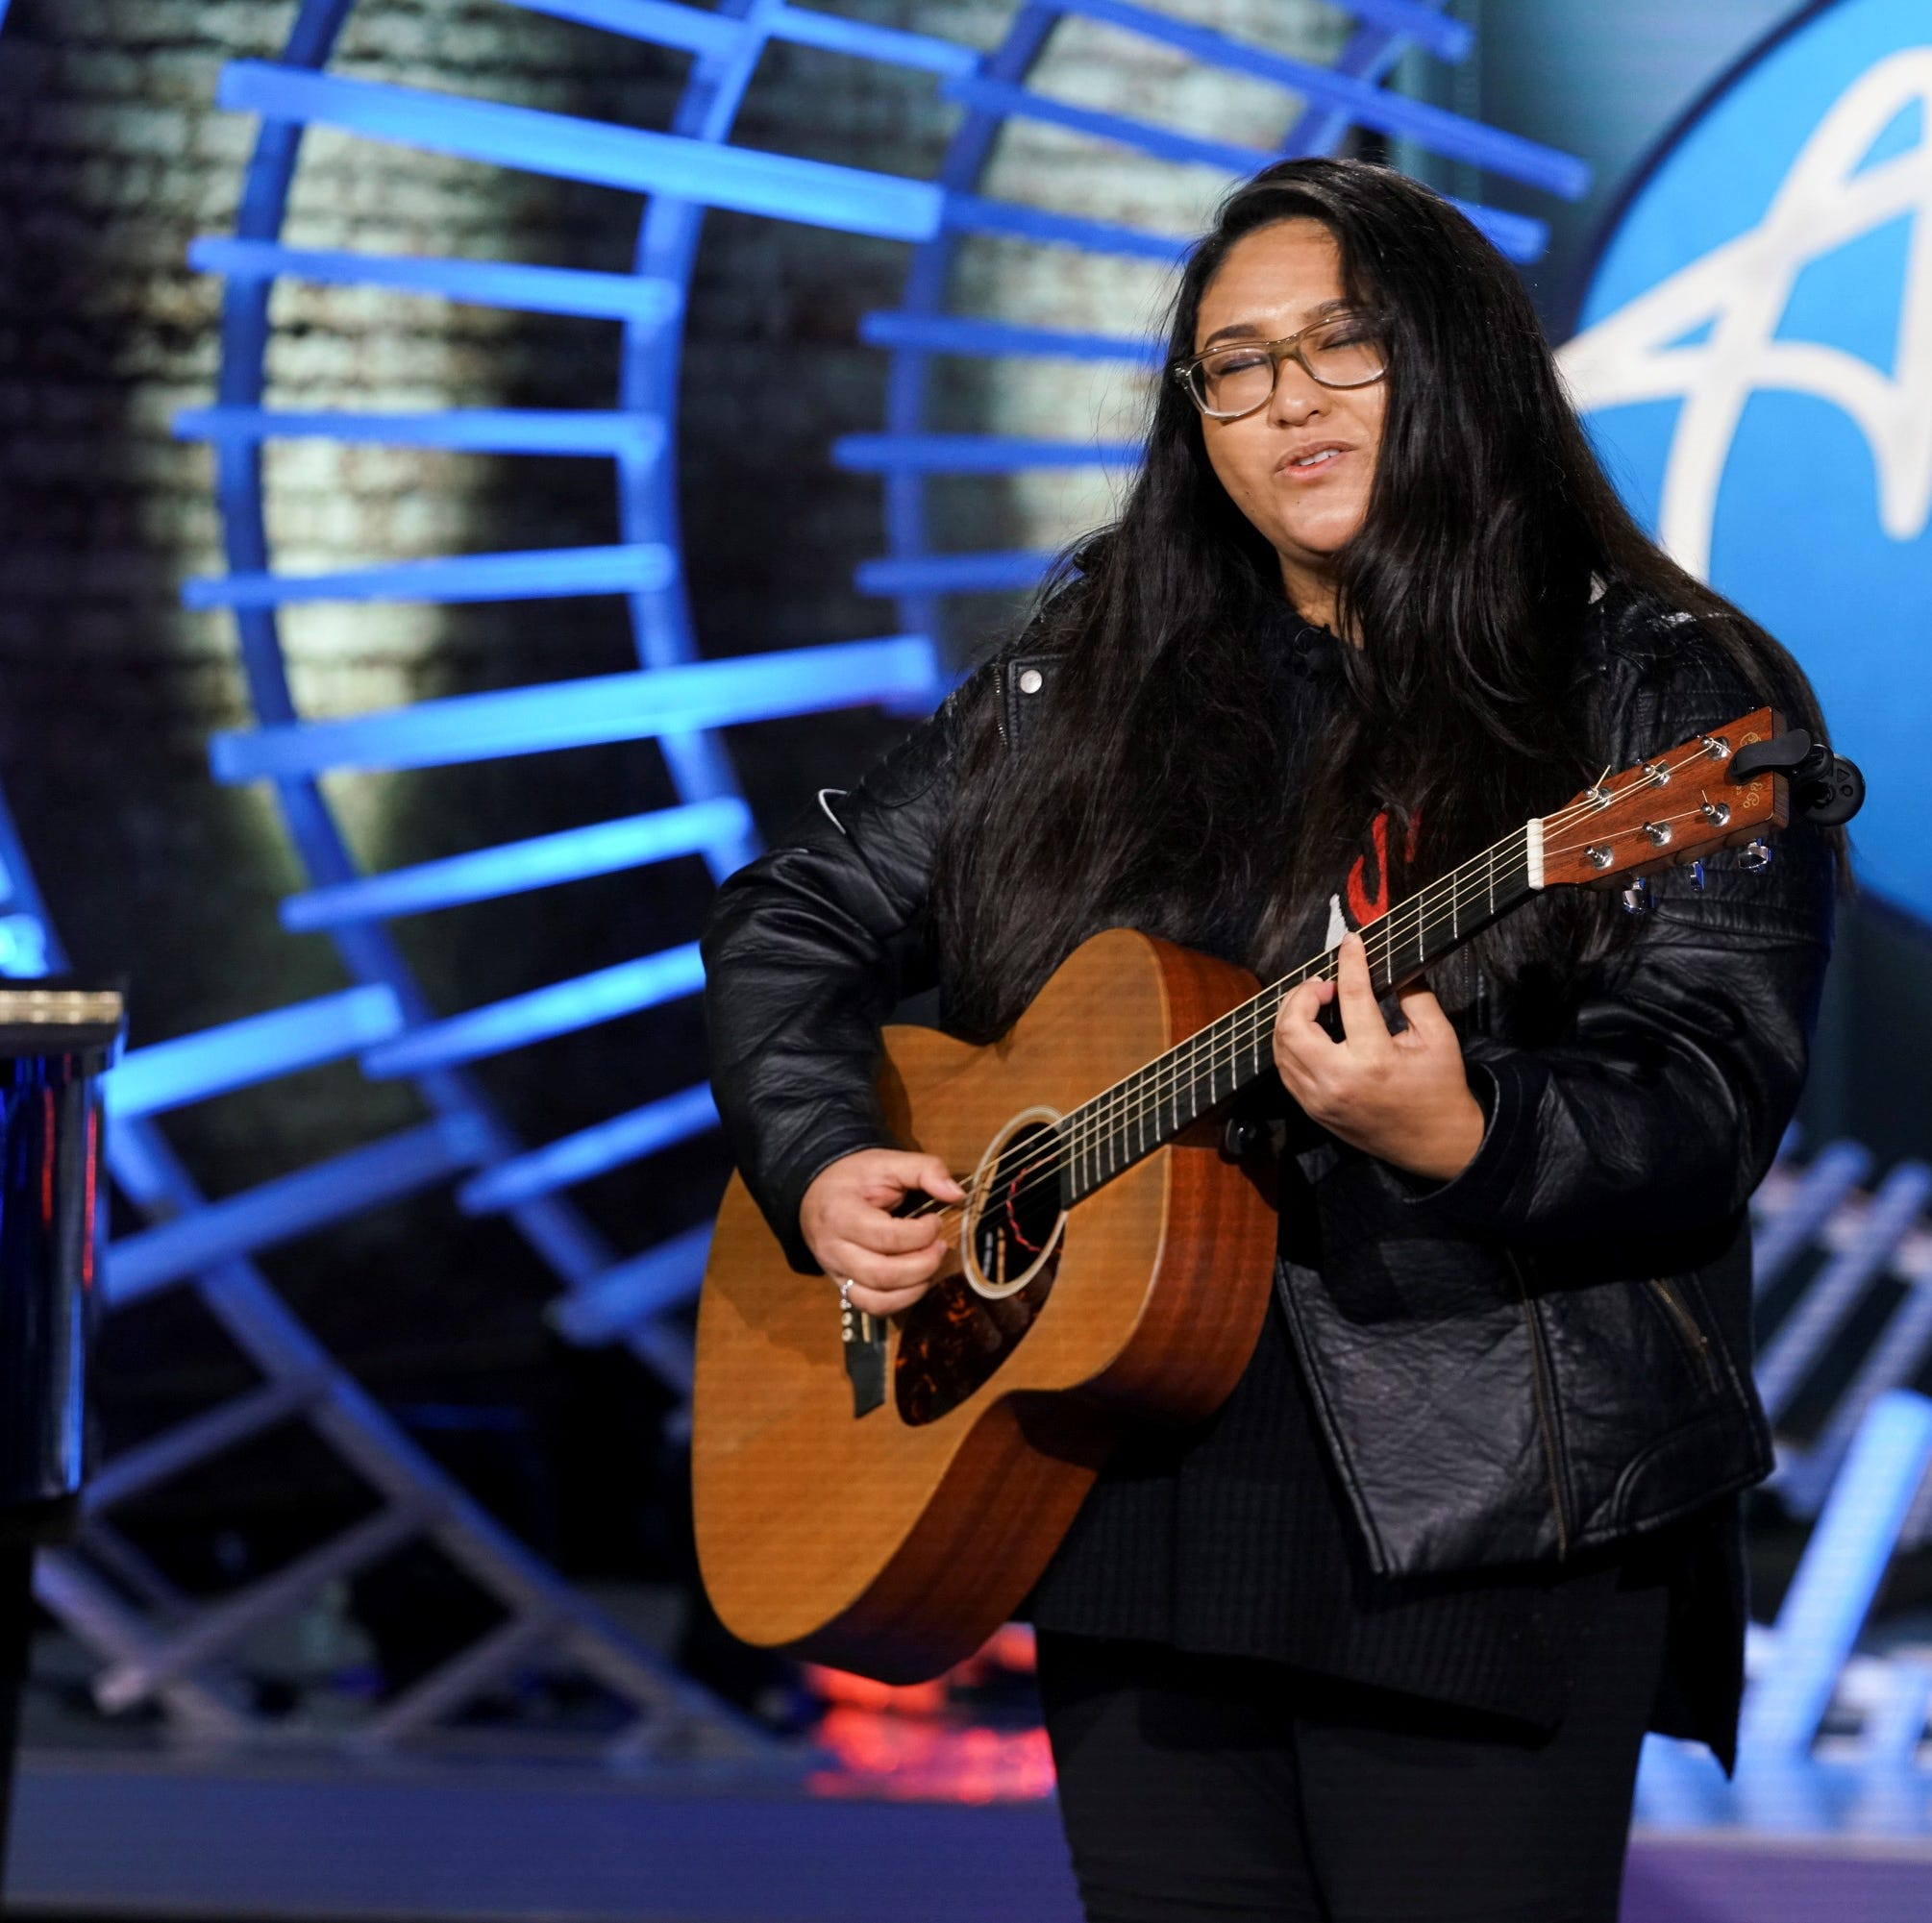 American Idol quest ends for Salinas native, but experience was 'awesome'